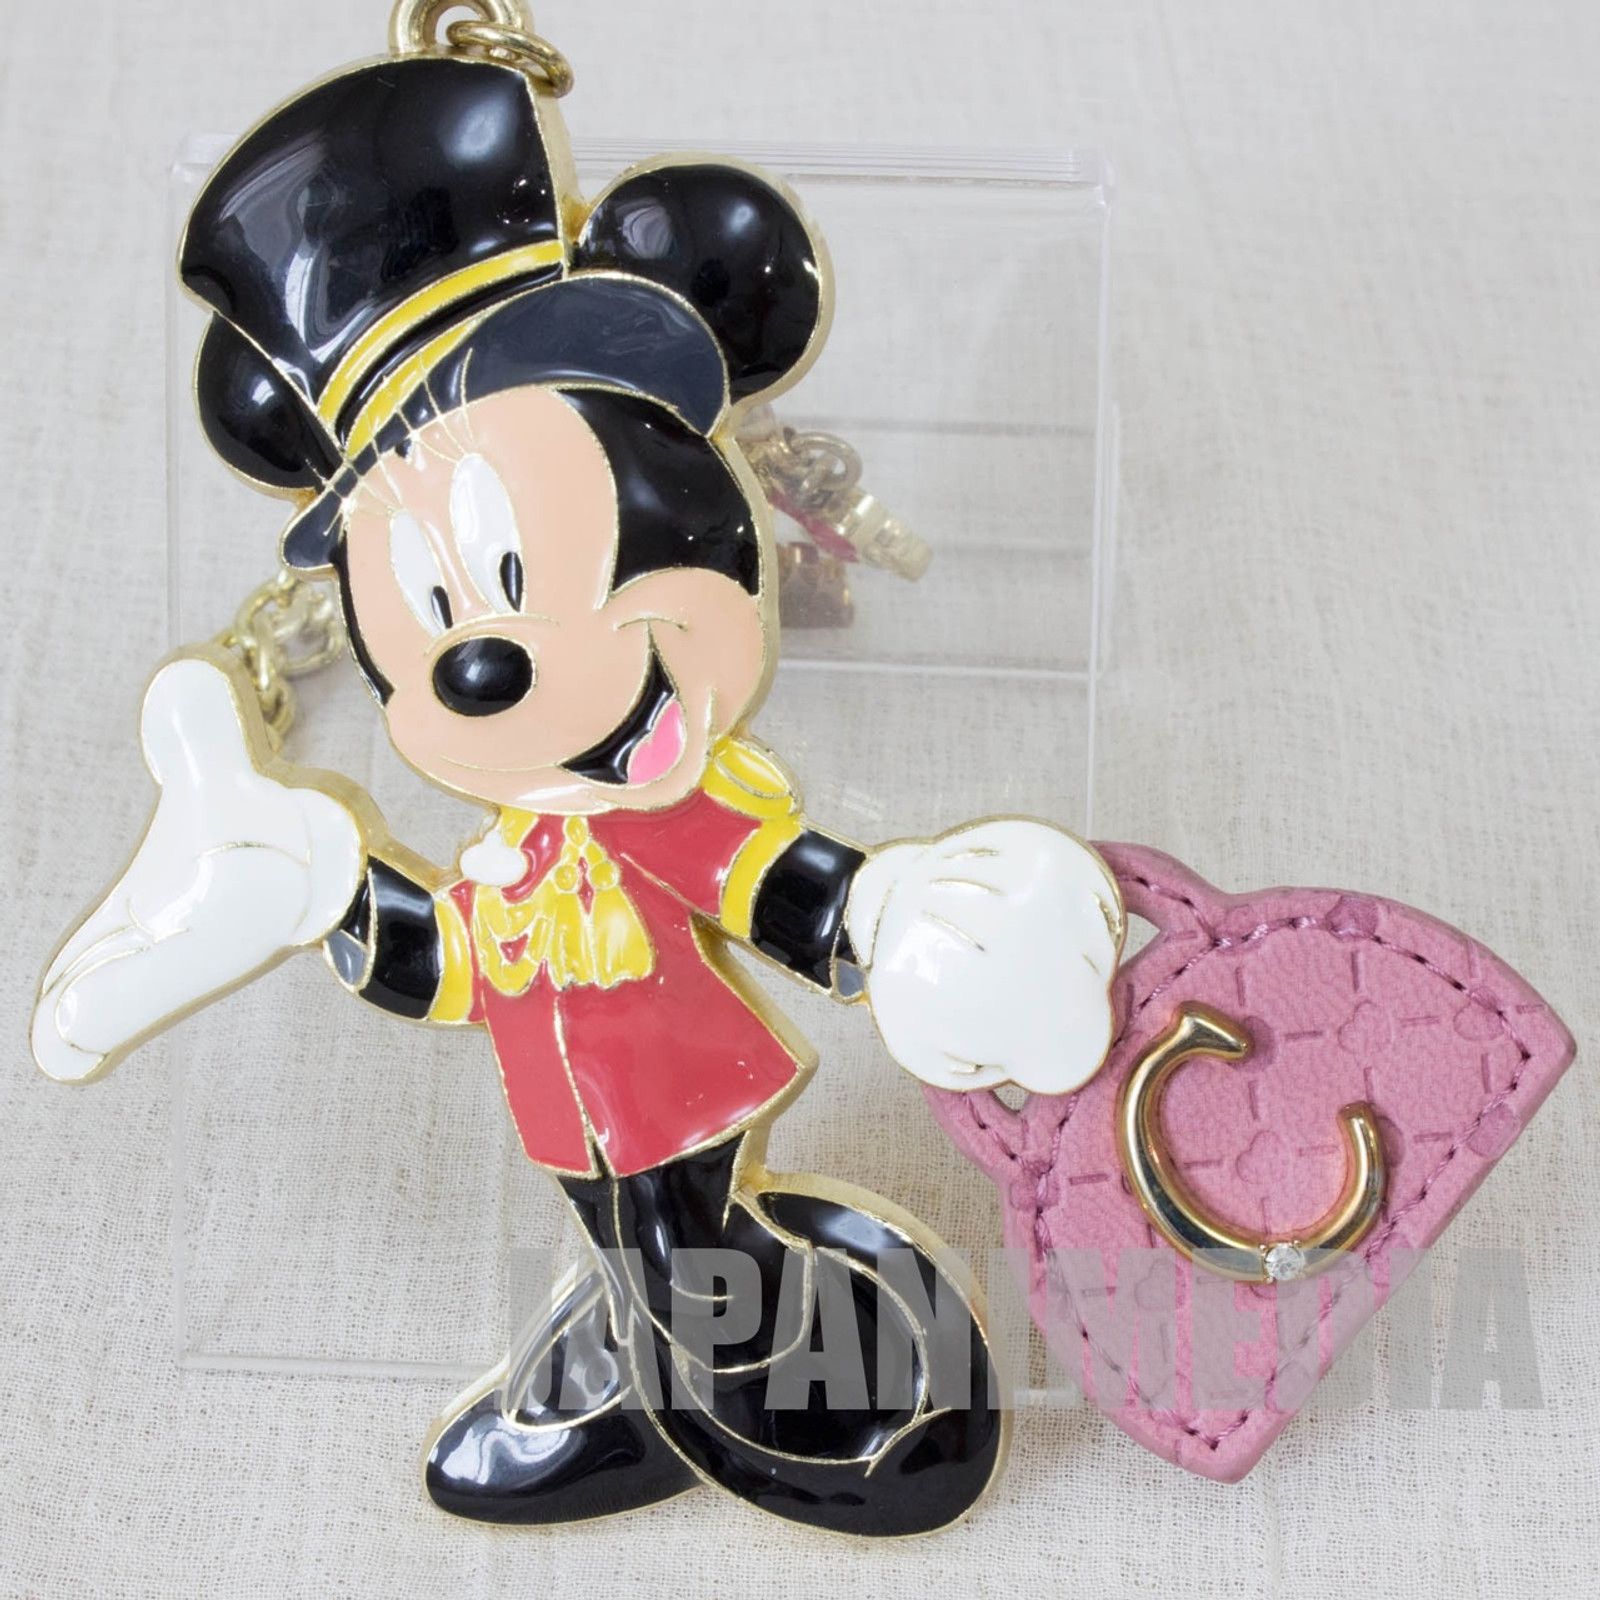 Disney Minnie Mouse Keycain & Charm 2pc Tokyo Disney Resort Disney Sea Hotel MiraCosta limited JAPAN